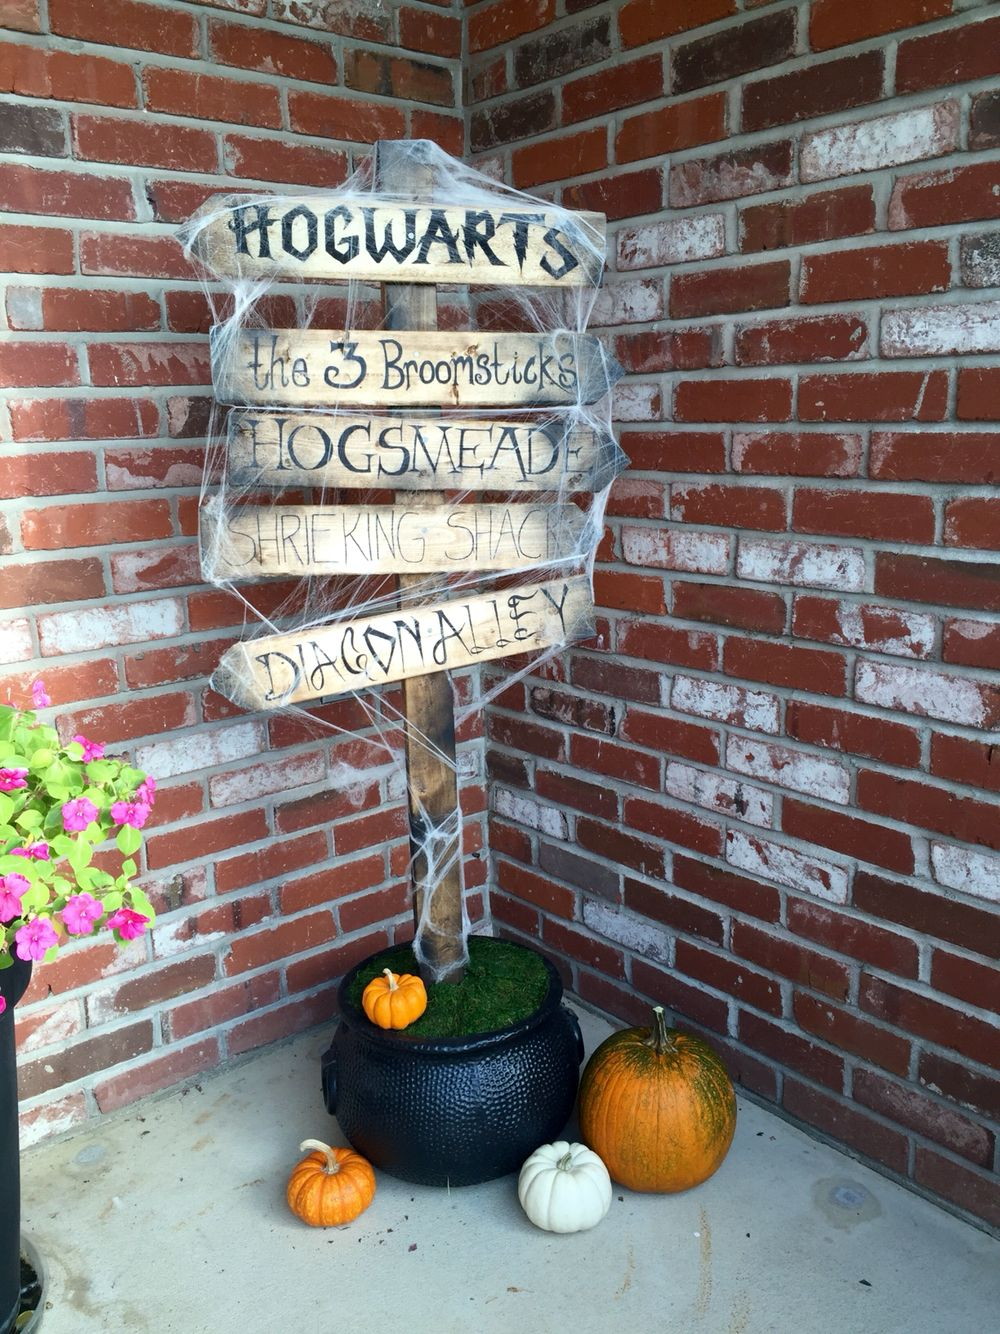 Location Décoration Harry Potter Love This Harry Potter Porch Halloween Decor Such A Fun